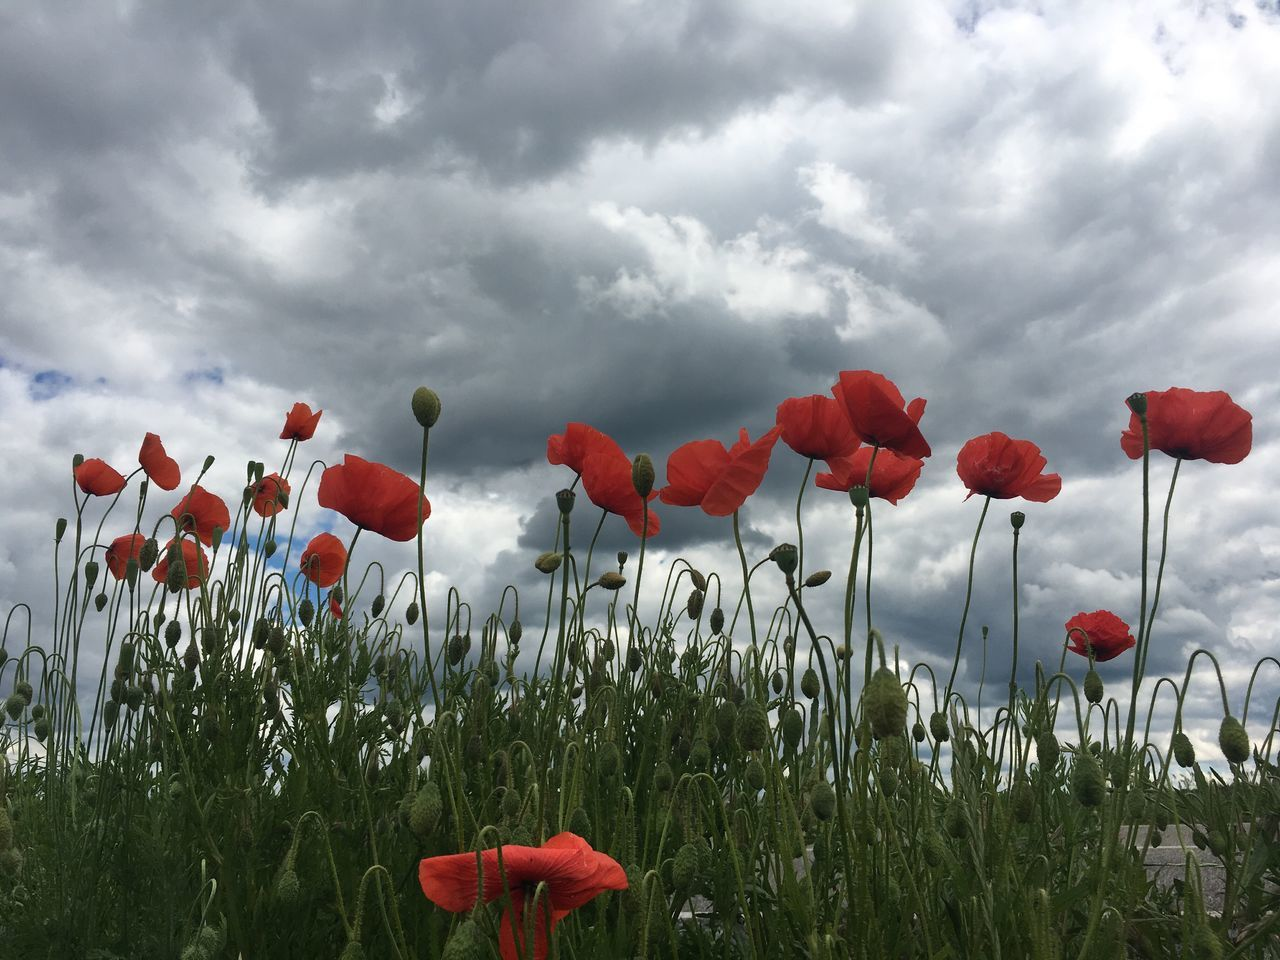 Cloud - Sky Field Flower Nature Beauty In Nature Growth Poppy Red Sky Plant Fragility Day Outdoors Grass Freshness One Person Flower Head People Poppy Flowers Poppies  Flowers,Plants & Garden Flowers